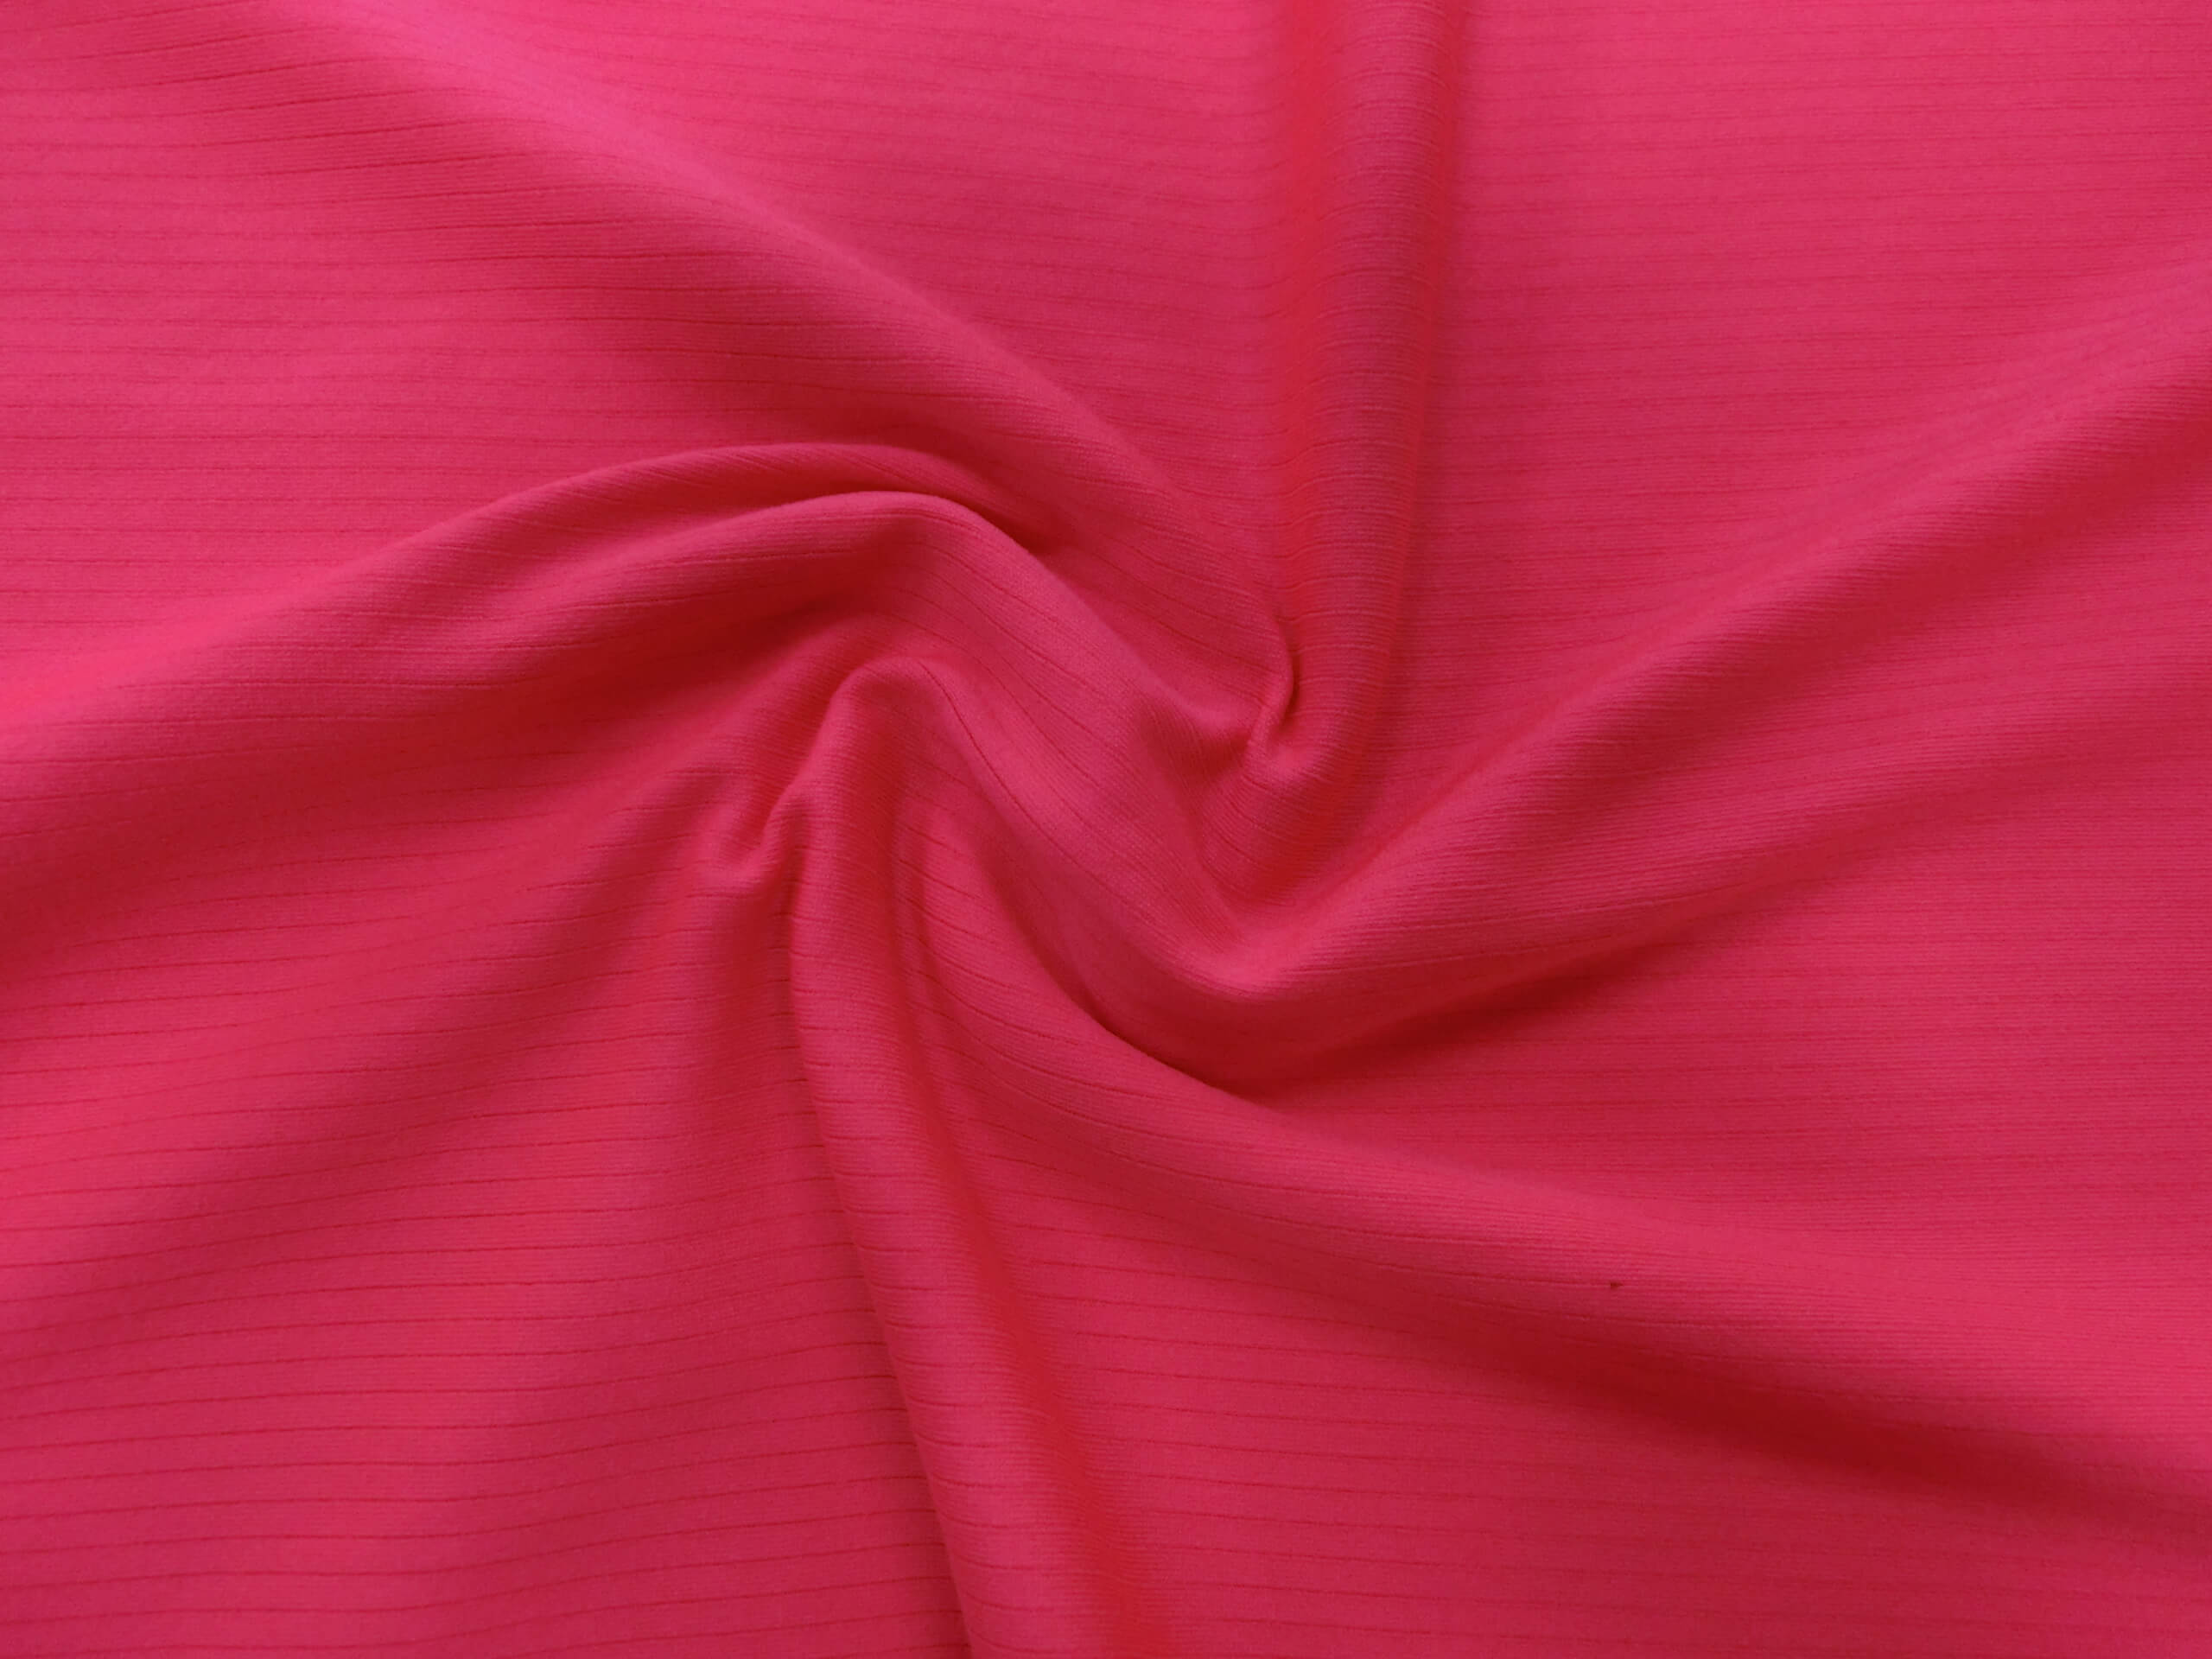 Polyester Waterproof Woven Spandex Elastic Fabric for Garment